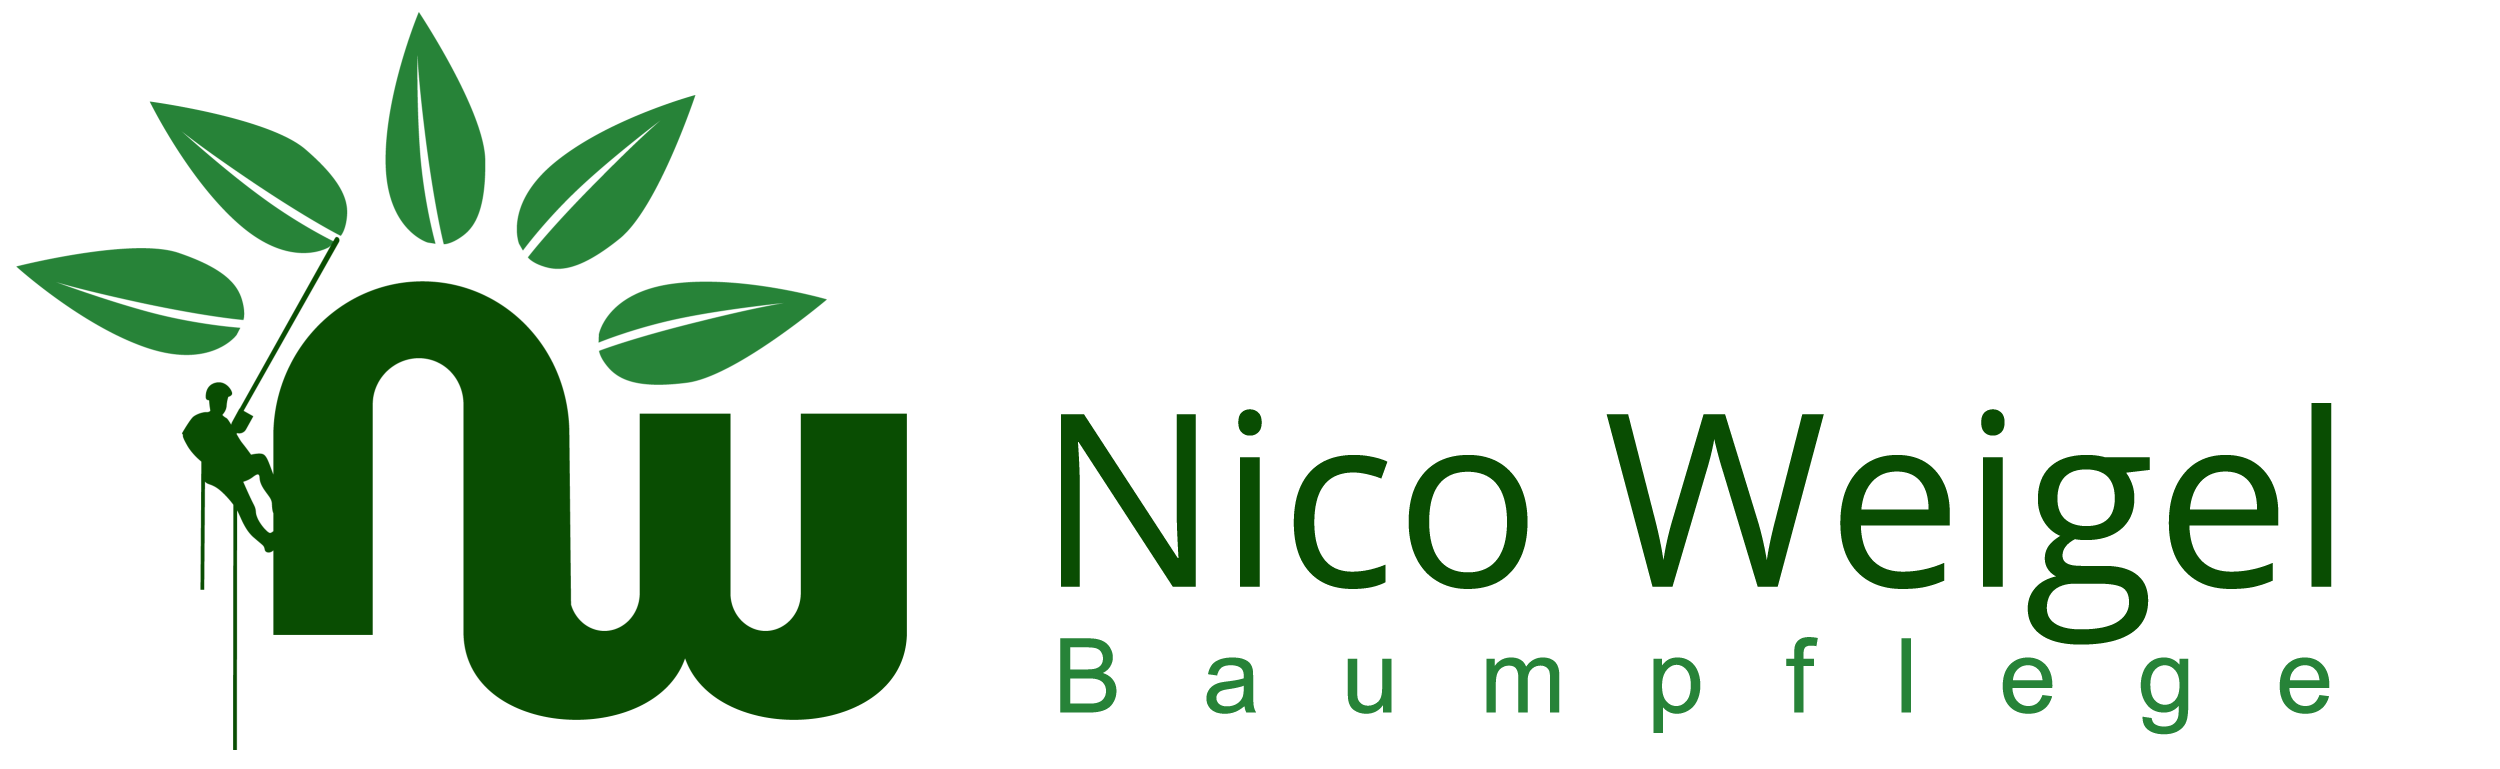 Nico Weigel Baumpflege